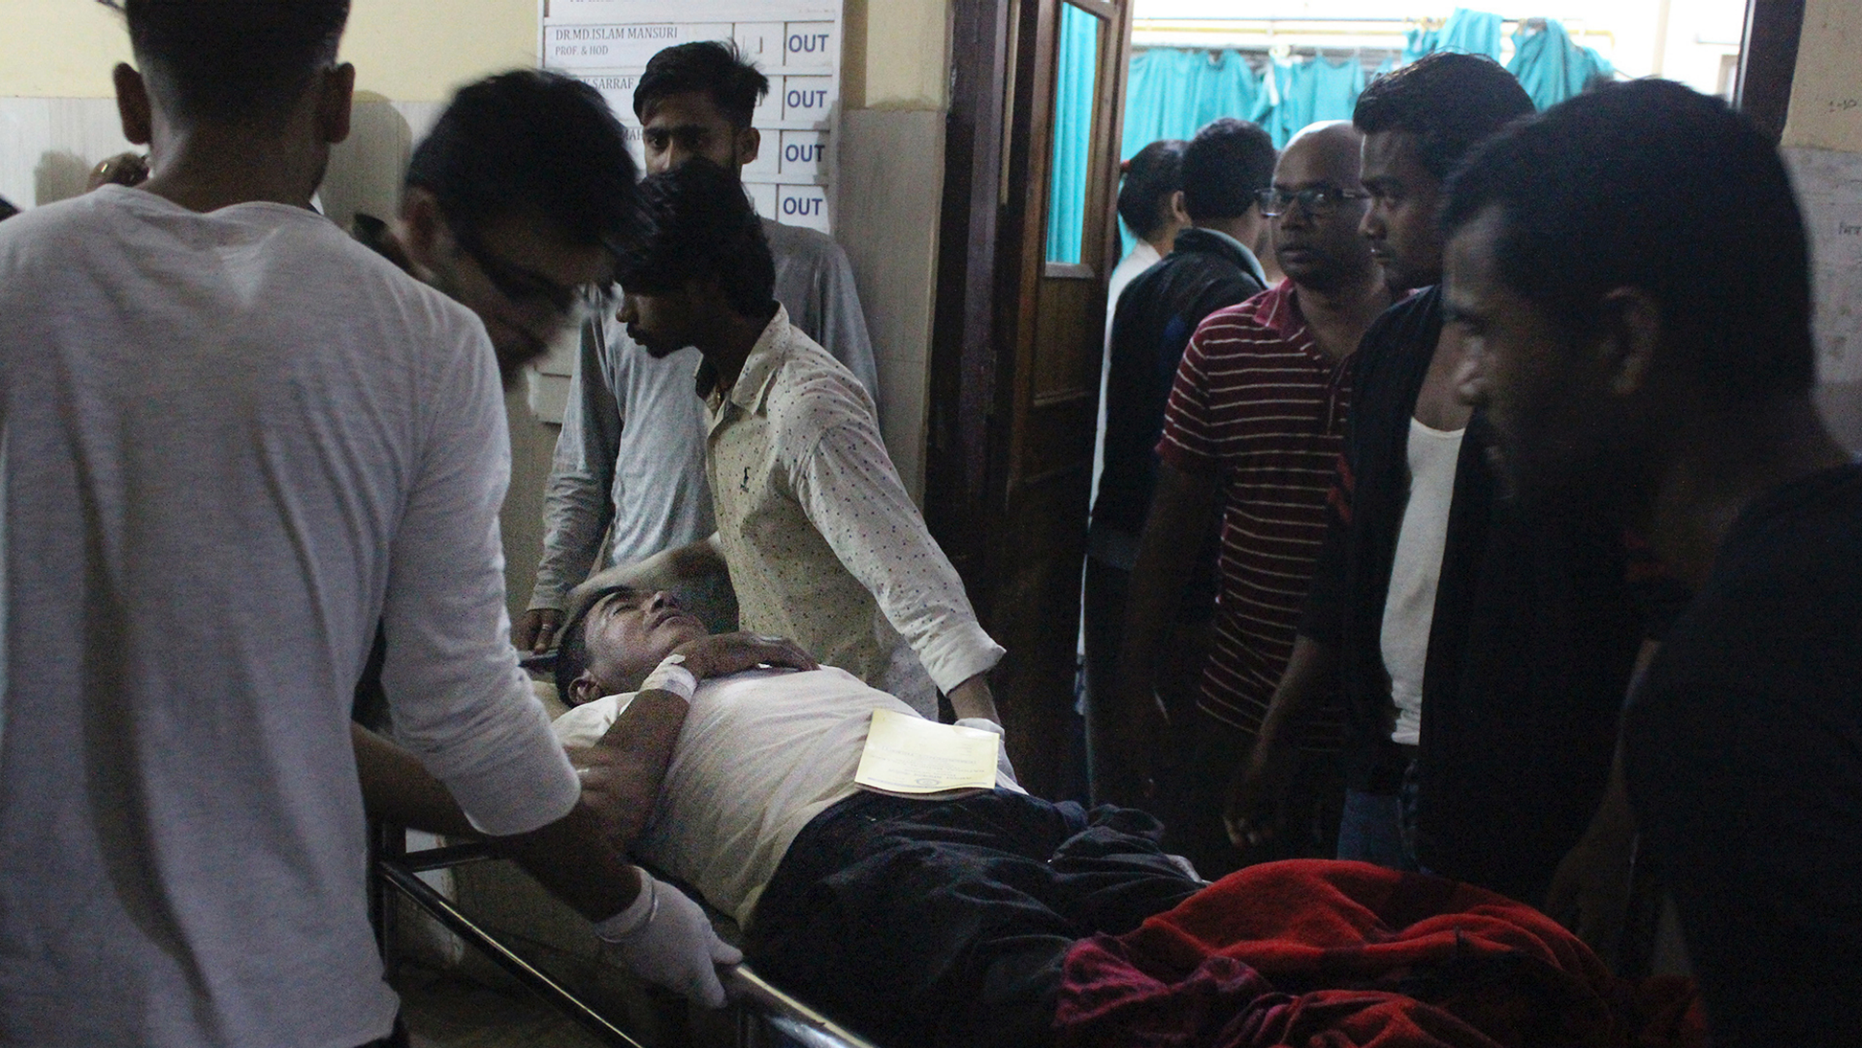 An Injured of rain storm from Bara district is being brought to a government hospital, in Birgunj, 136 kilometers (85 miles) from Kathmandu, Nepal, March 31, 2019. Officials say many people were killed and hundreds were injured by a rainstorm that swept southern Nepal on Sunday. (AP Photo/Jiyalal Sah)